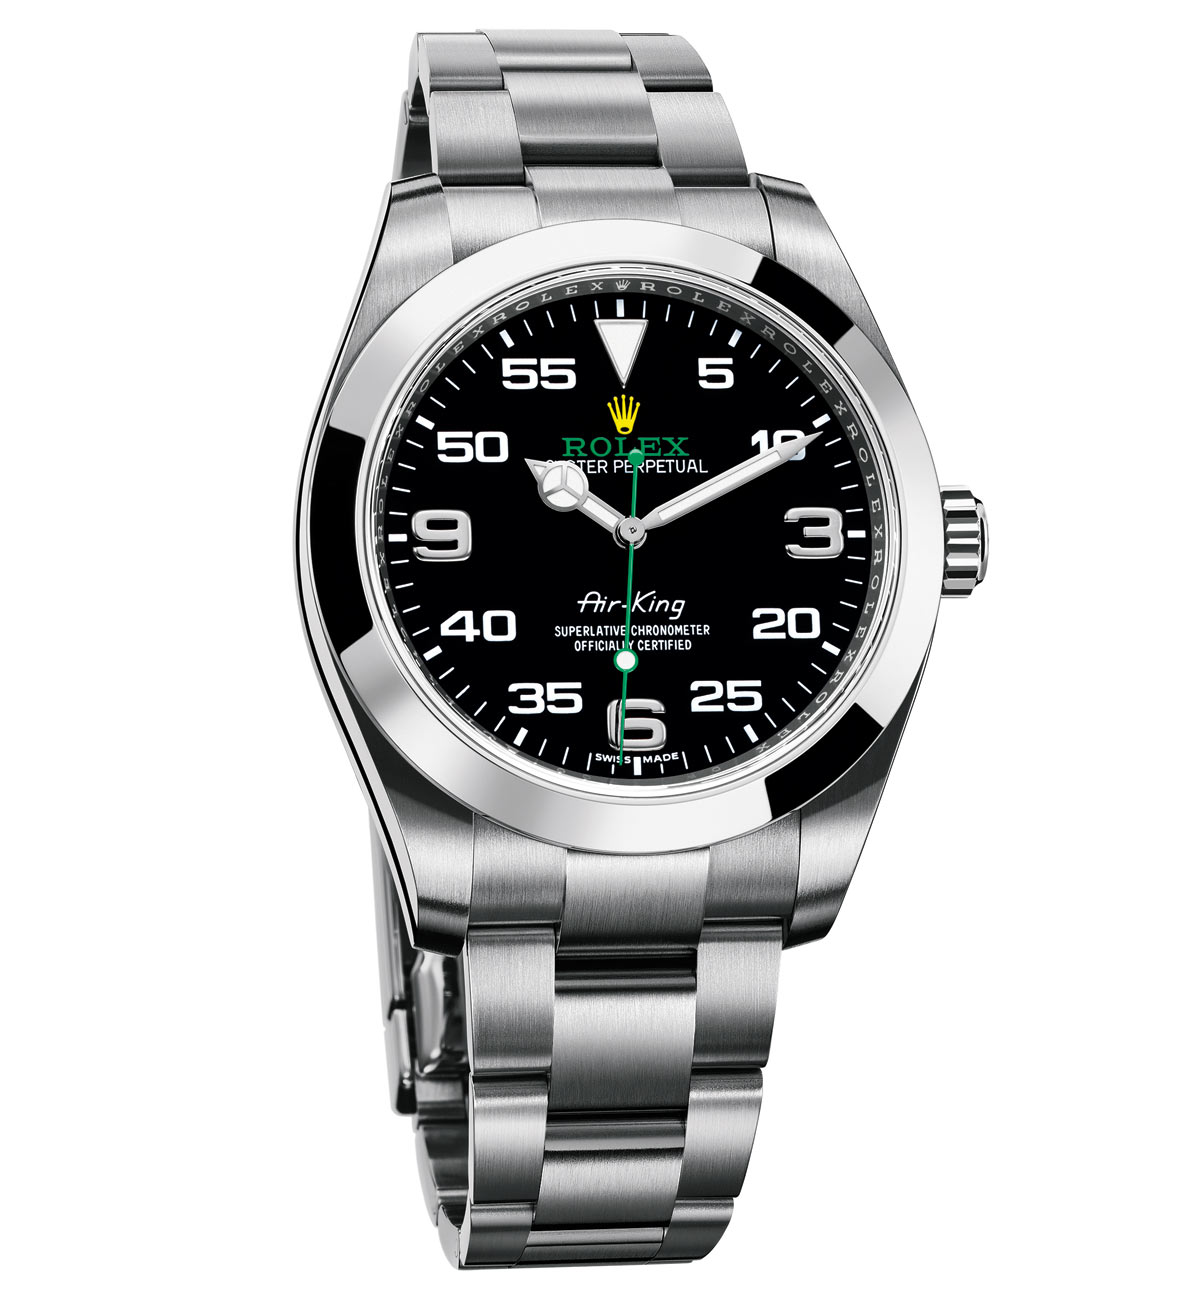 rolex oyster perpetual air king ref 116900 time and watches the watch blog. Black Bedroom Furniture Sets. Home Design Ideas